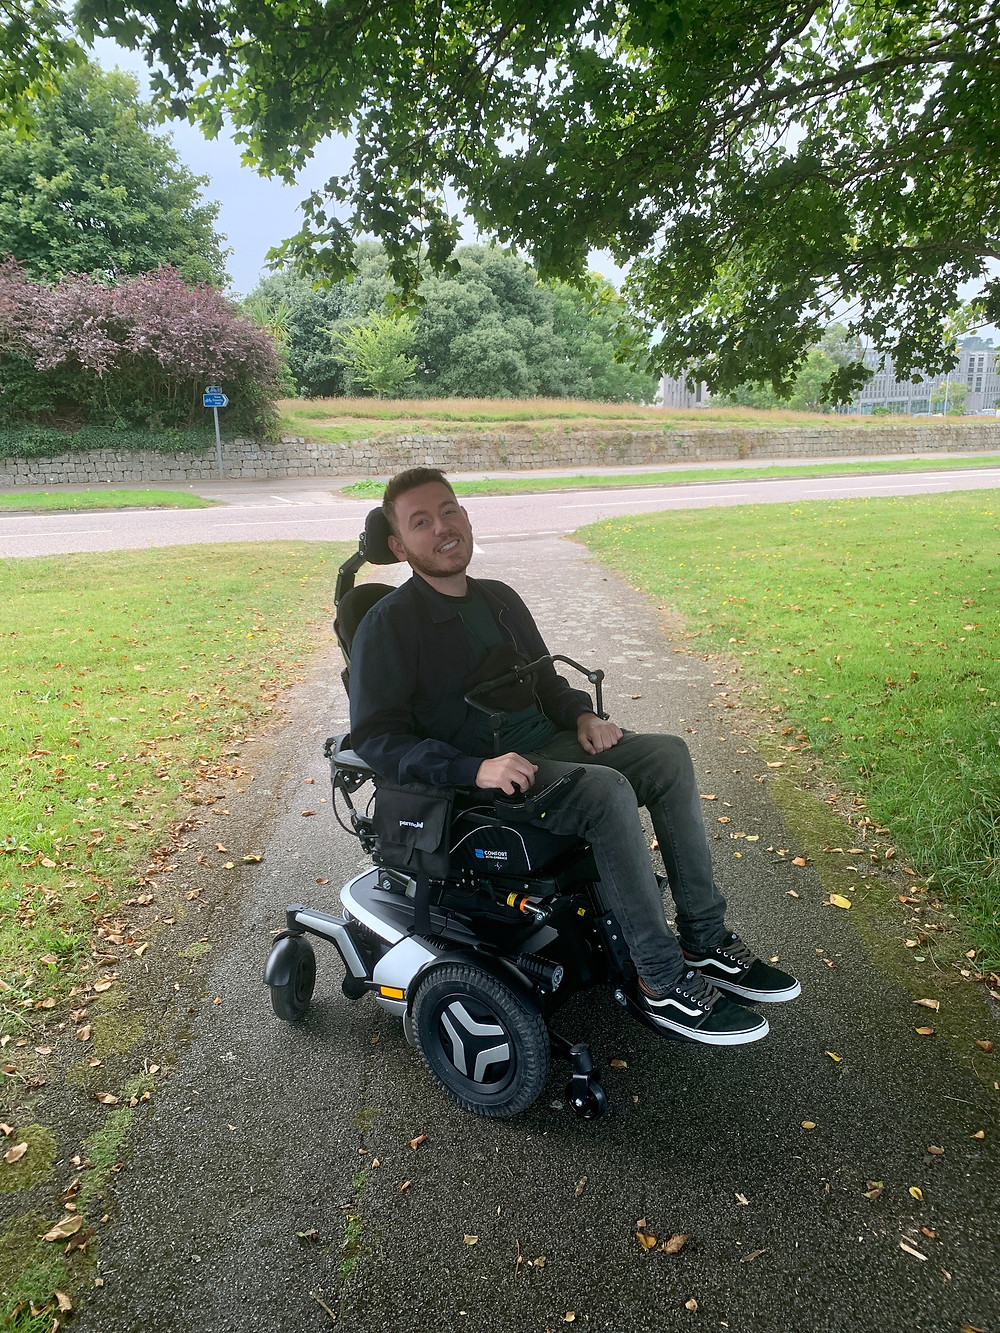 Ross using the power chair out on a walk, greenery in the background